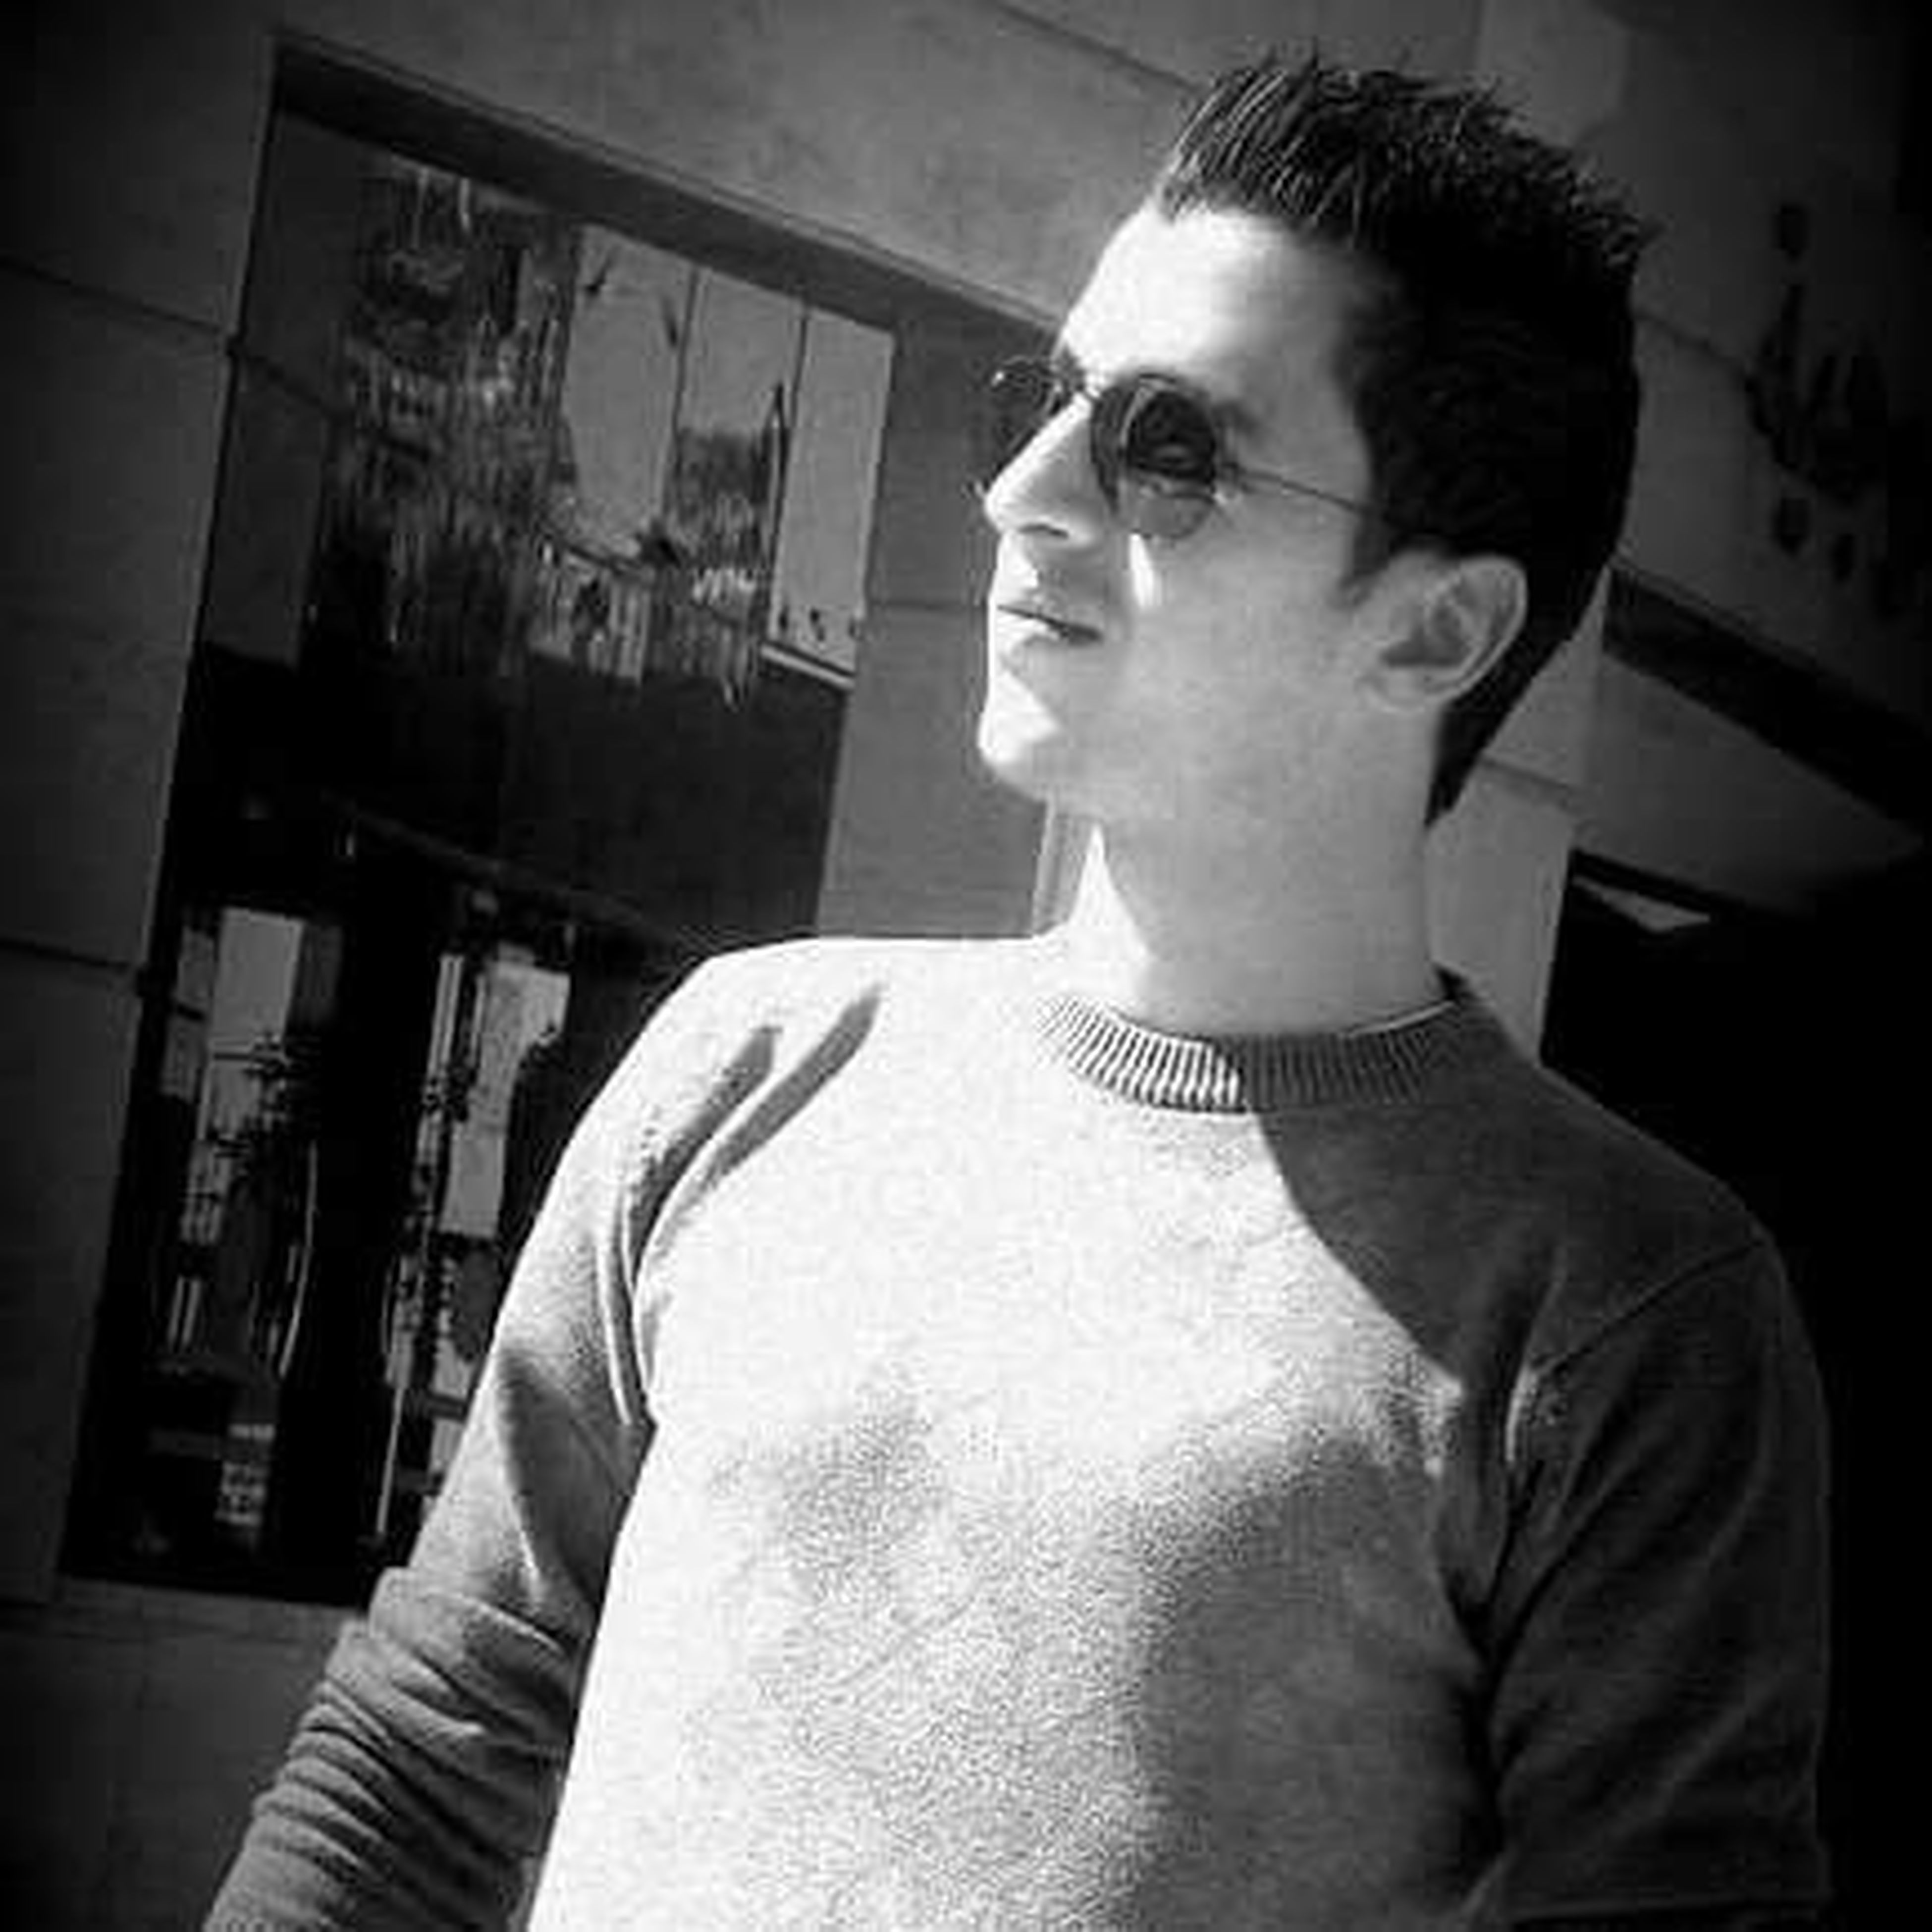 young adult, casual clothing, indoors, headshot, looking away, sunglasses, well-dressed, person, front view, hairstyle, fashionable, retail, handsome, contemplation, serious, looking